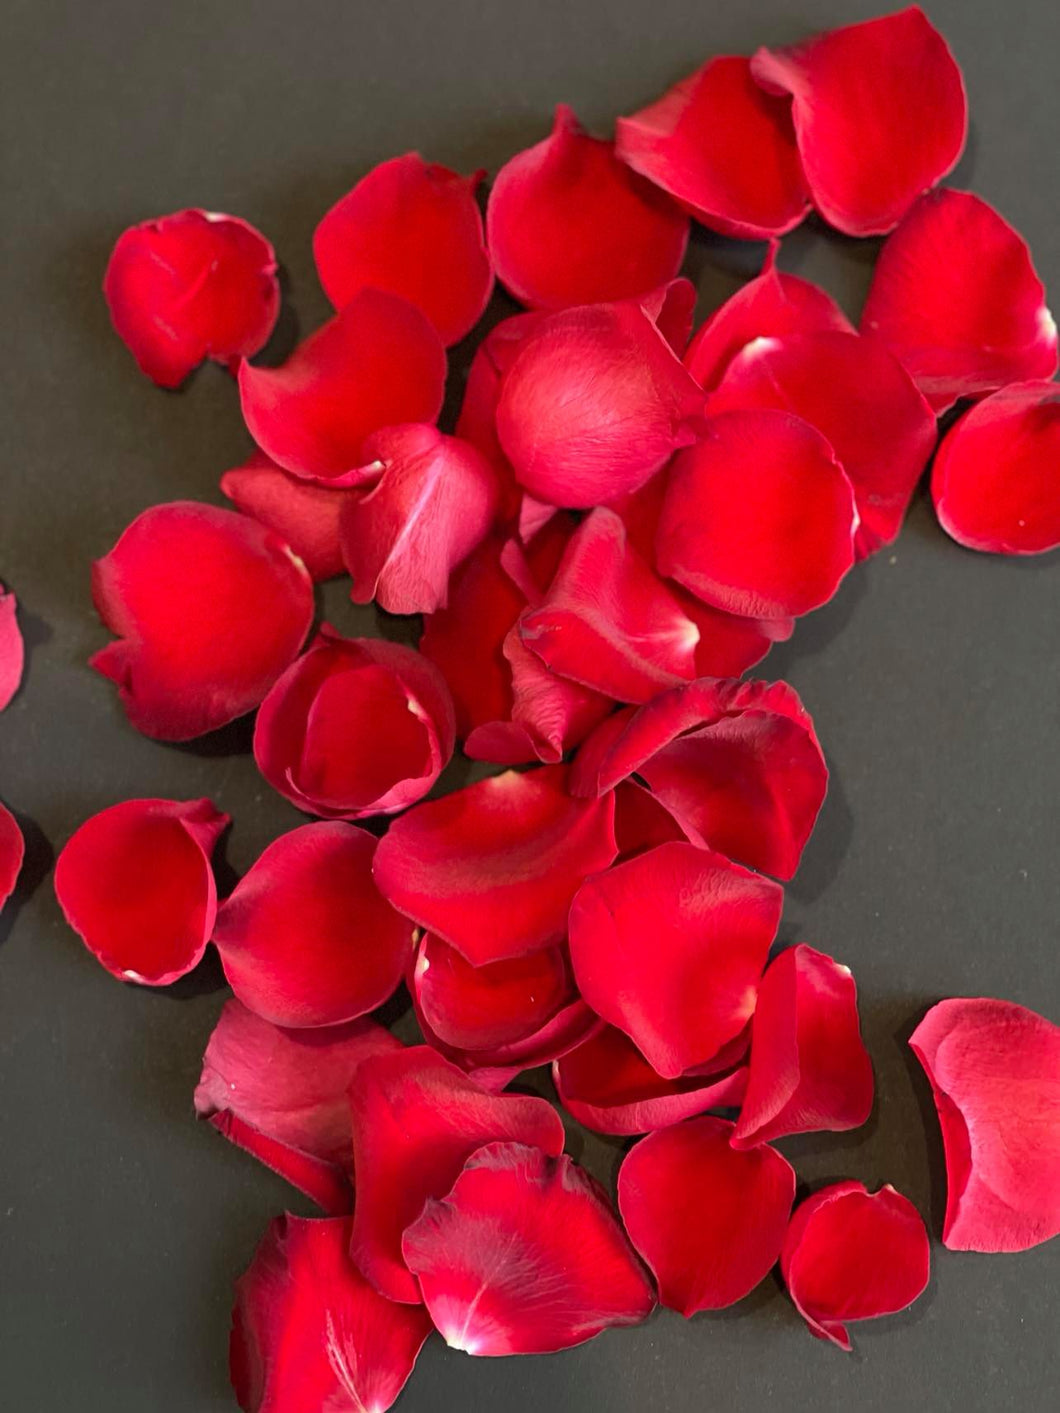 VALENTINES DAY RED ROSE PETALS